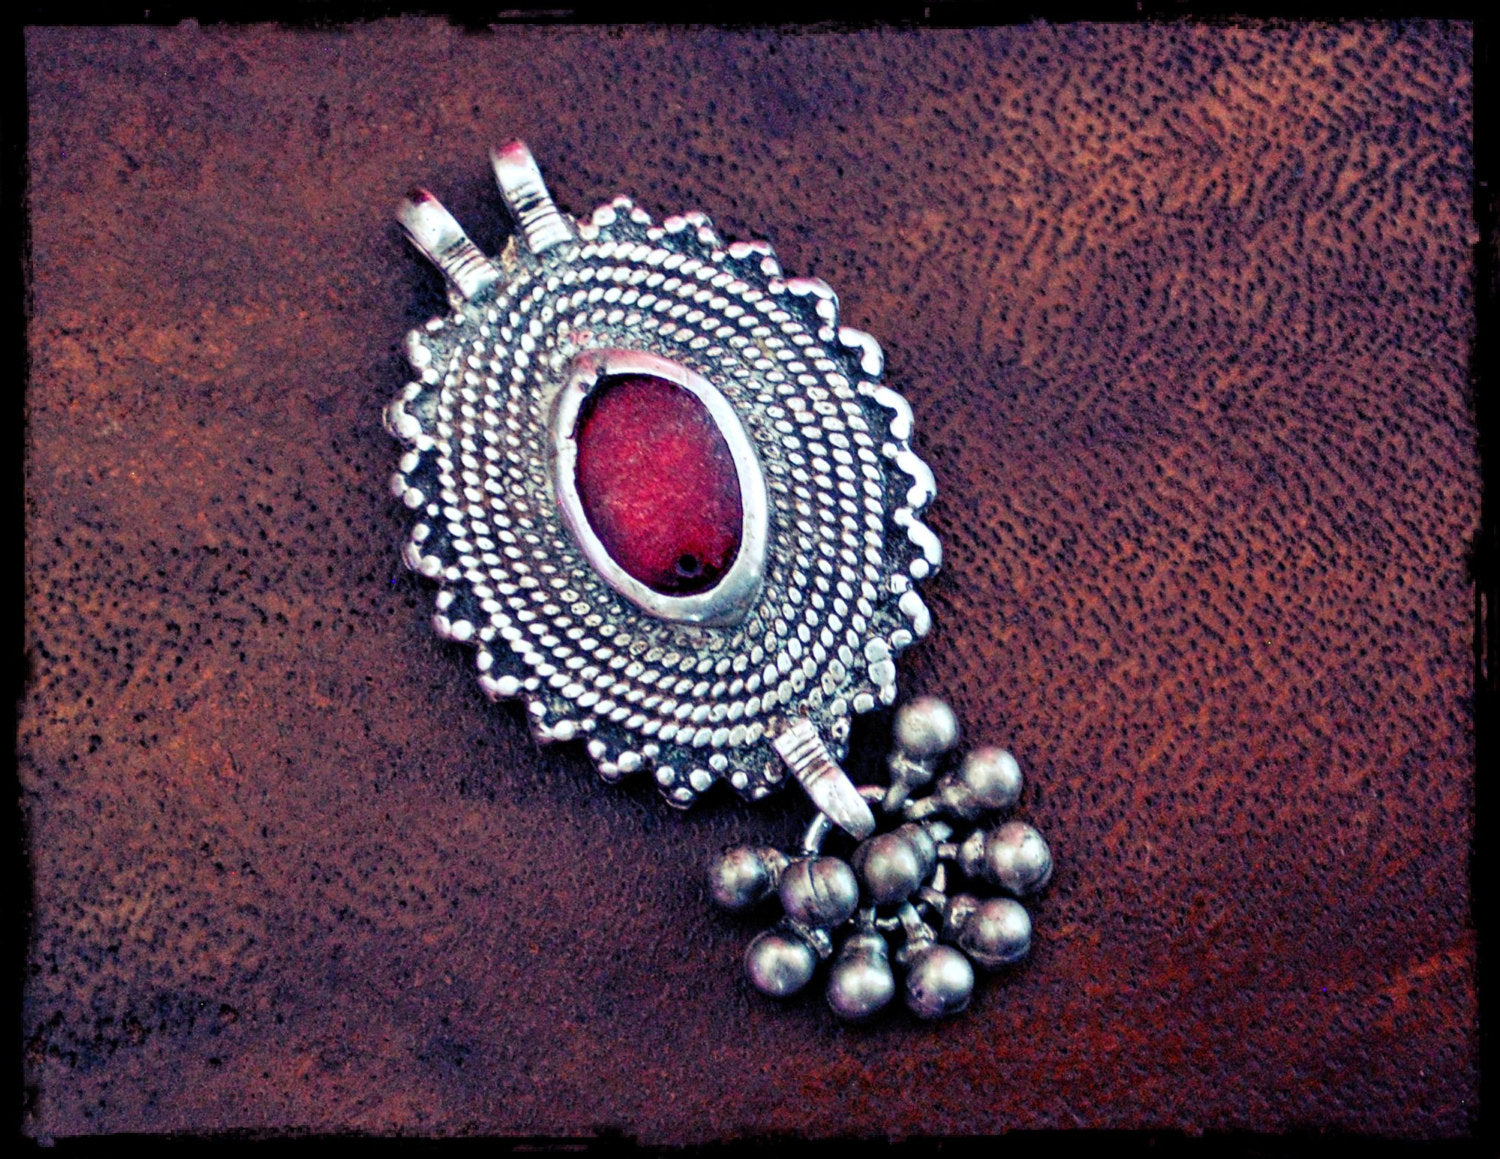 Antique Afghan Silver Pendant with Red Glass and Small Bells - Ethnic Tribal Silver Pendant